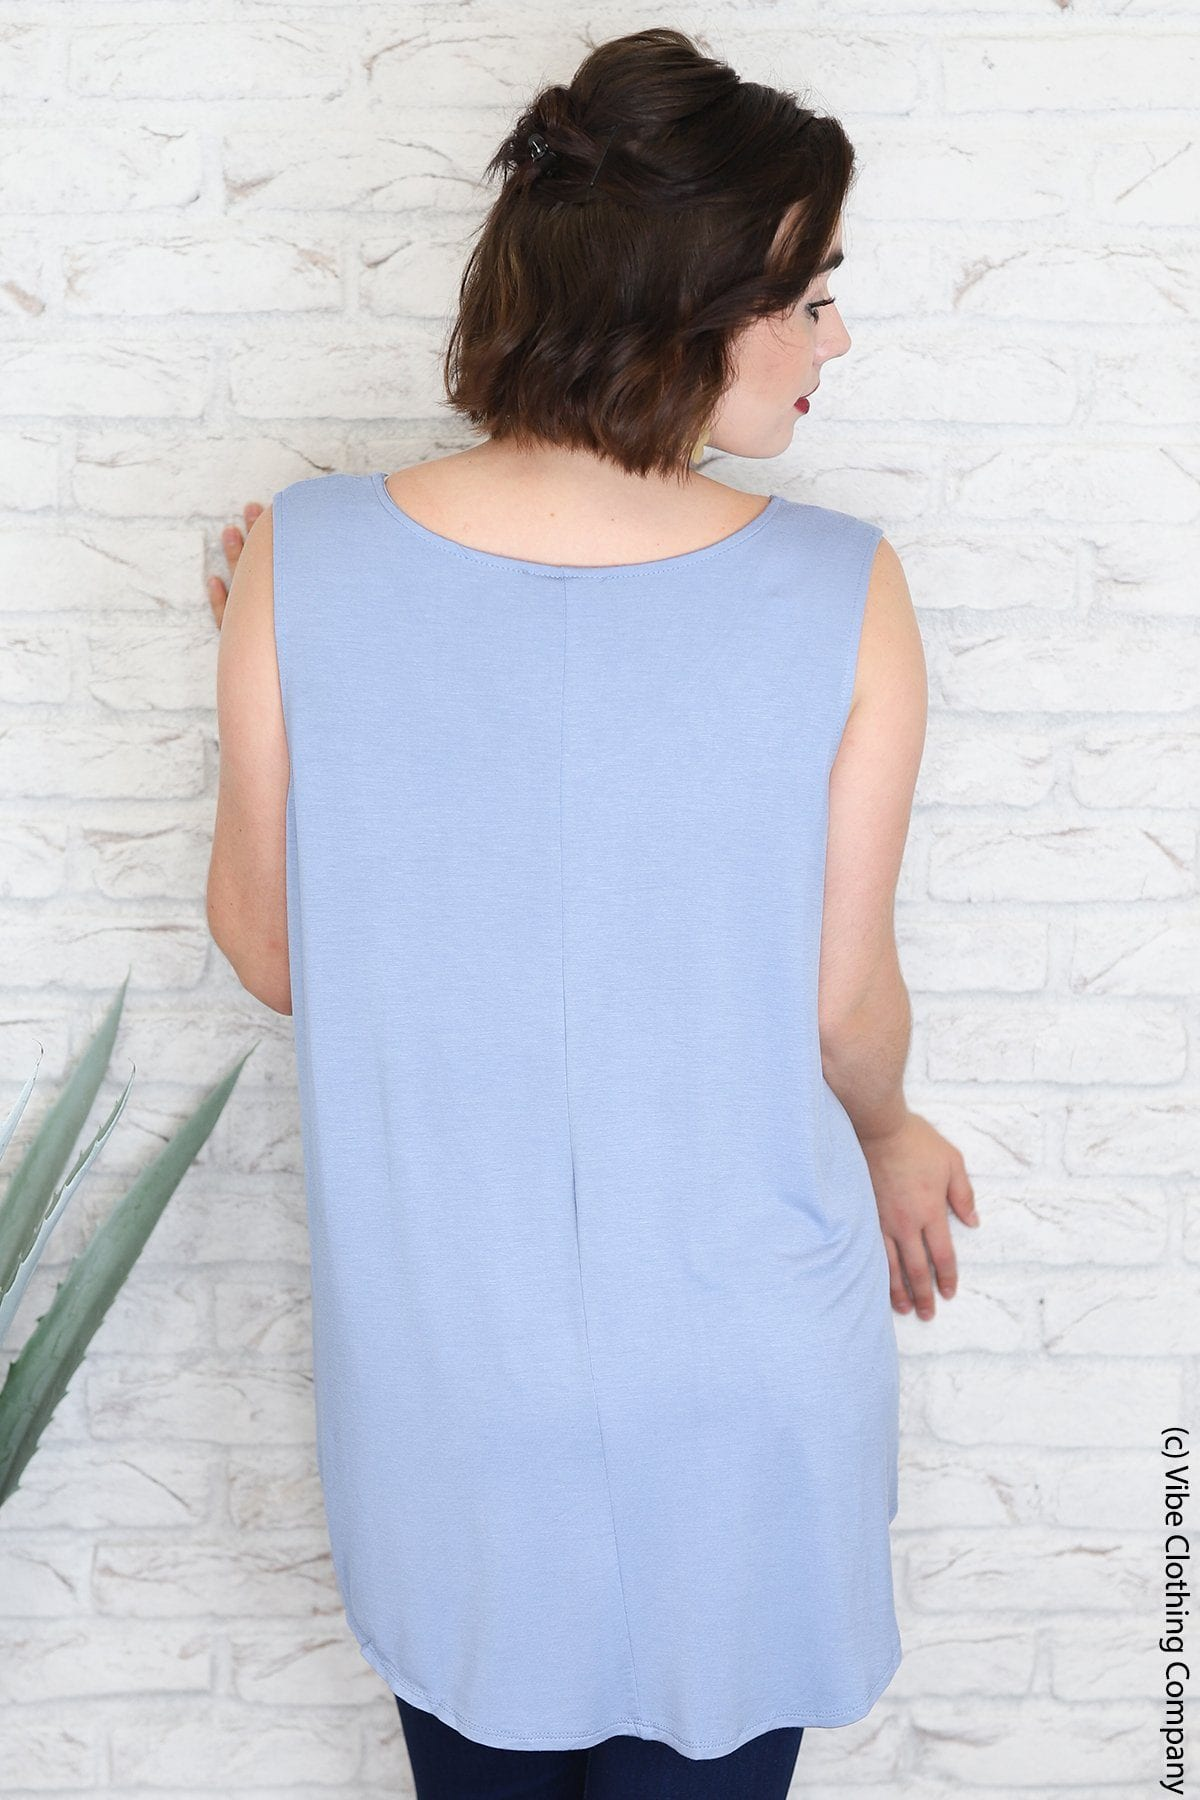 TAMALYN Tank - Bubble Blue BASICS ash mocha 2100